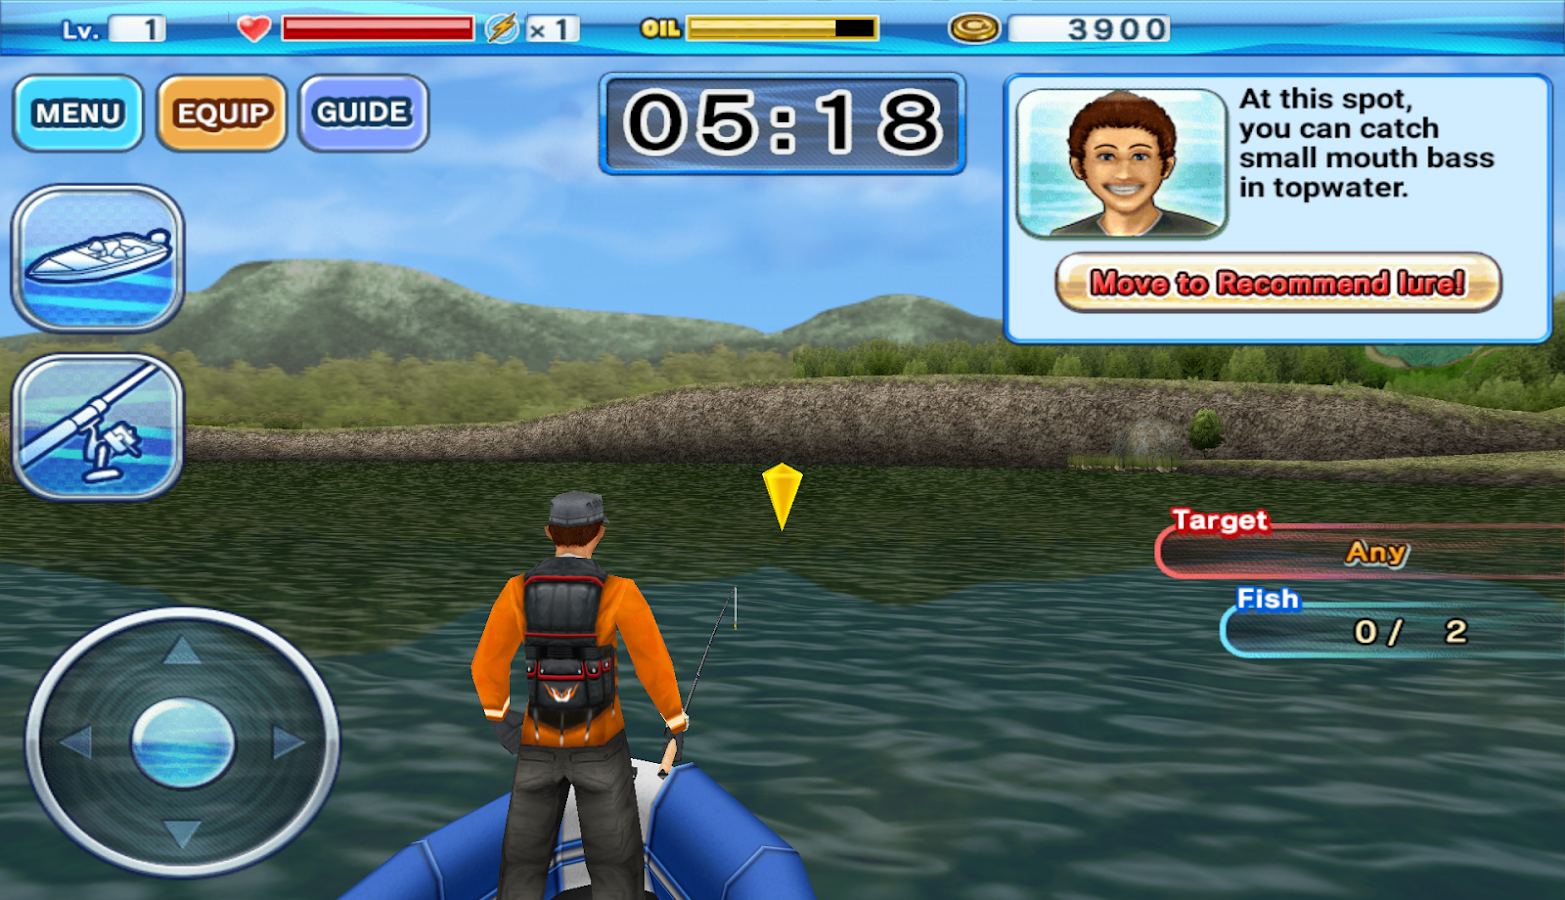 Bass 39 n 39 guide lure fishing android apps on google play for Fishing tournament app